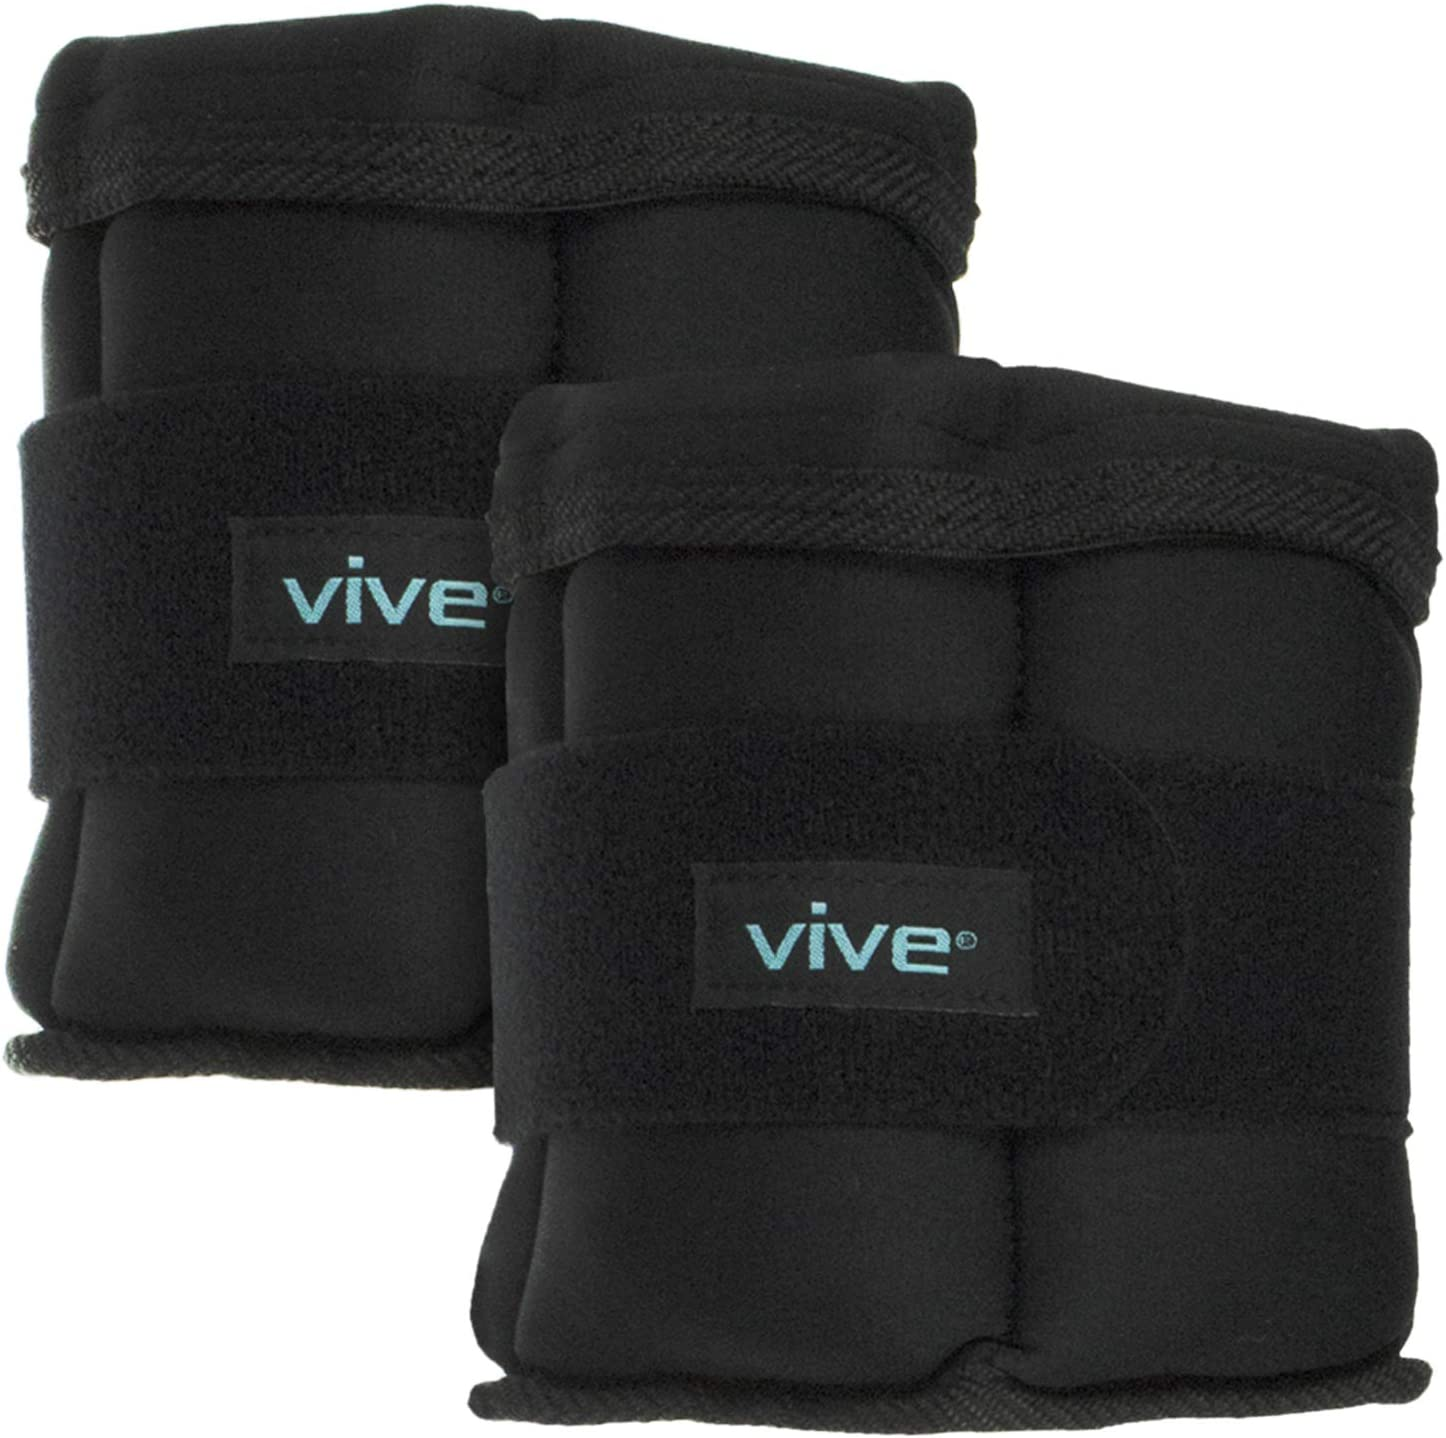 Vive Ankle Weight Set for Women Men – Pair of 2.5 or 5 LBs – Weighted Muscle Toner for Legs, or Wrist, Arms w Adjustable Strap – Resistance Training Exercise Equipment for Running Walking